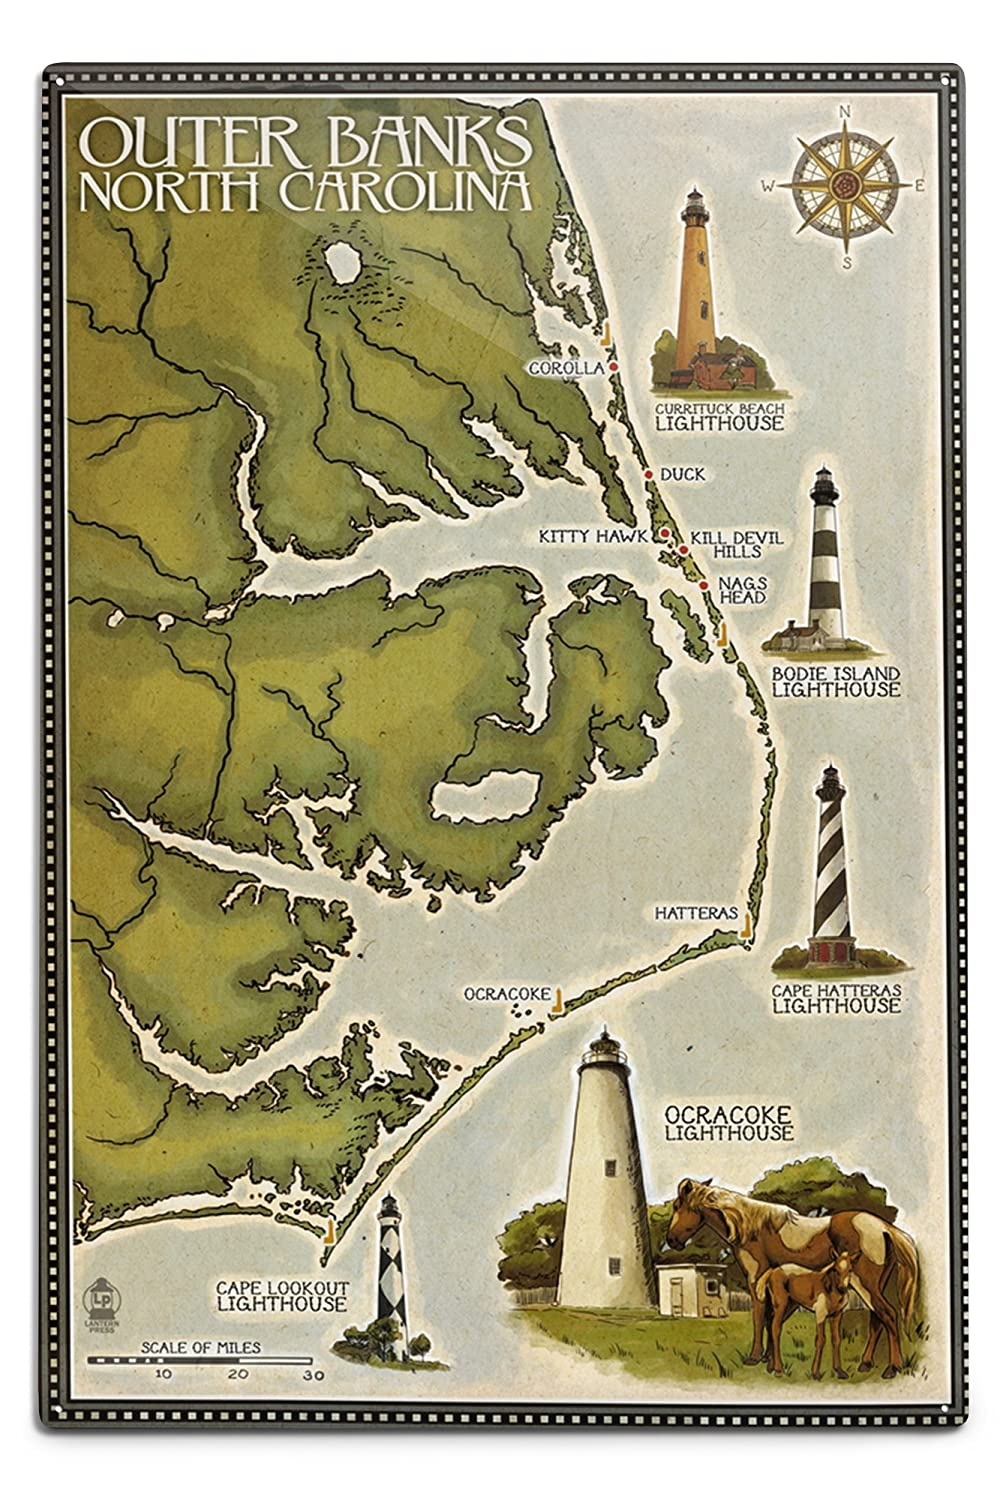 灯台と町マップ – Outer Banks , North Carolina 12 x 18 Metal Sign LANT-41078-12x18M 12 x 18 Metal Sign  B06Y1HDX4B